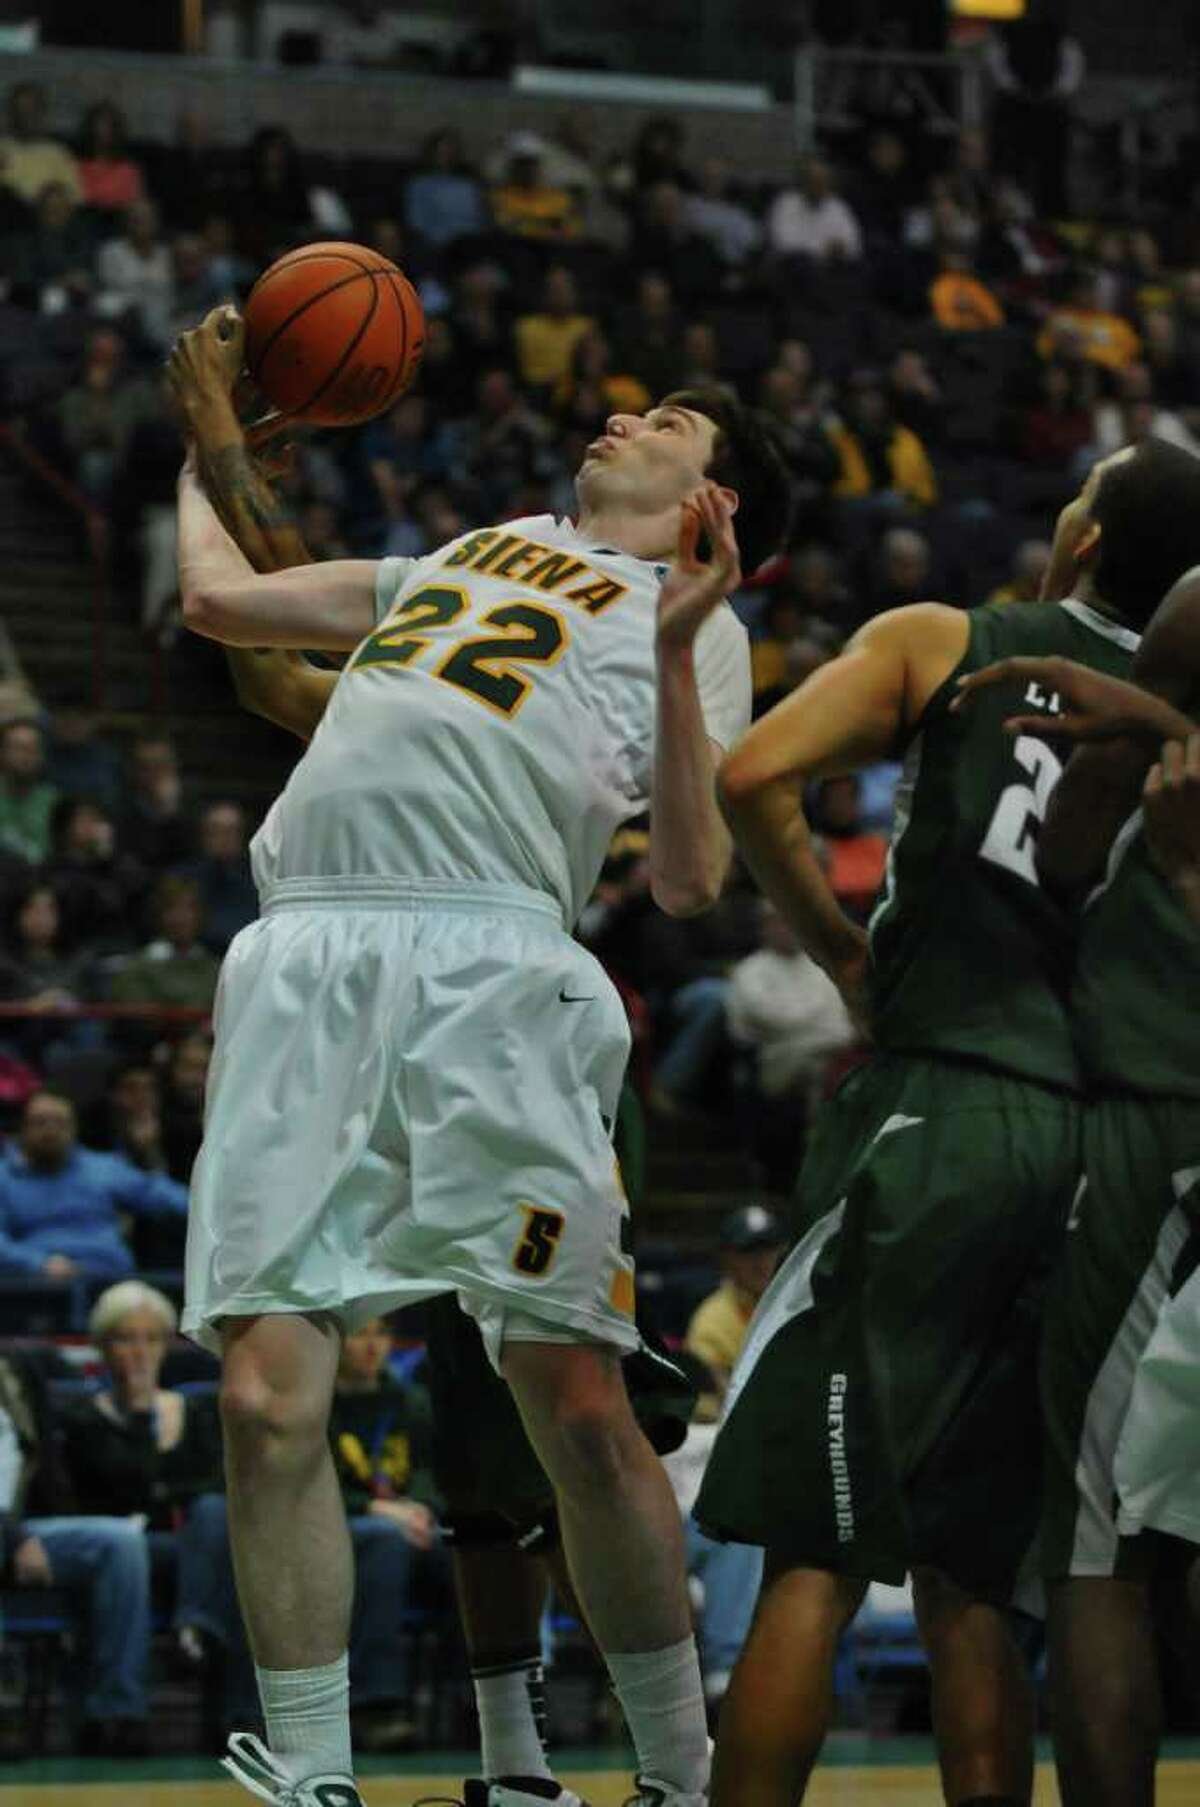 Siena's Ryan Rossiter battles for the ball during the second half of their 76-69 loss to Loyola at the Times Union Center in Albany, NY on Monday February 7, 2011. ( Philip Kamrass / Times Union )